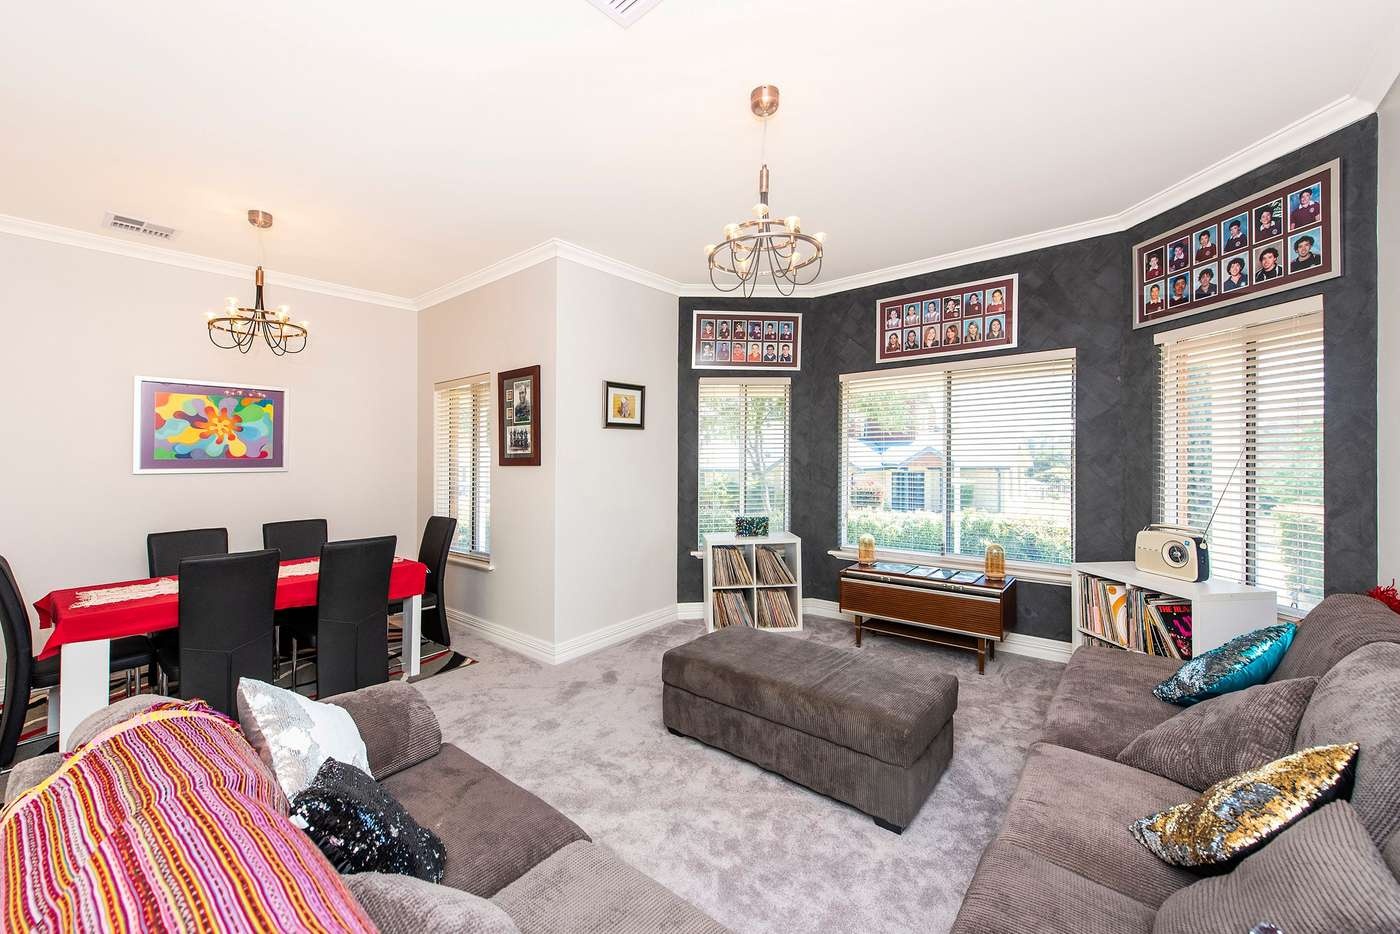 Seventh view of Homely house listing, 1 Upton Court, Baldivis WA 6171